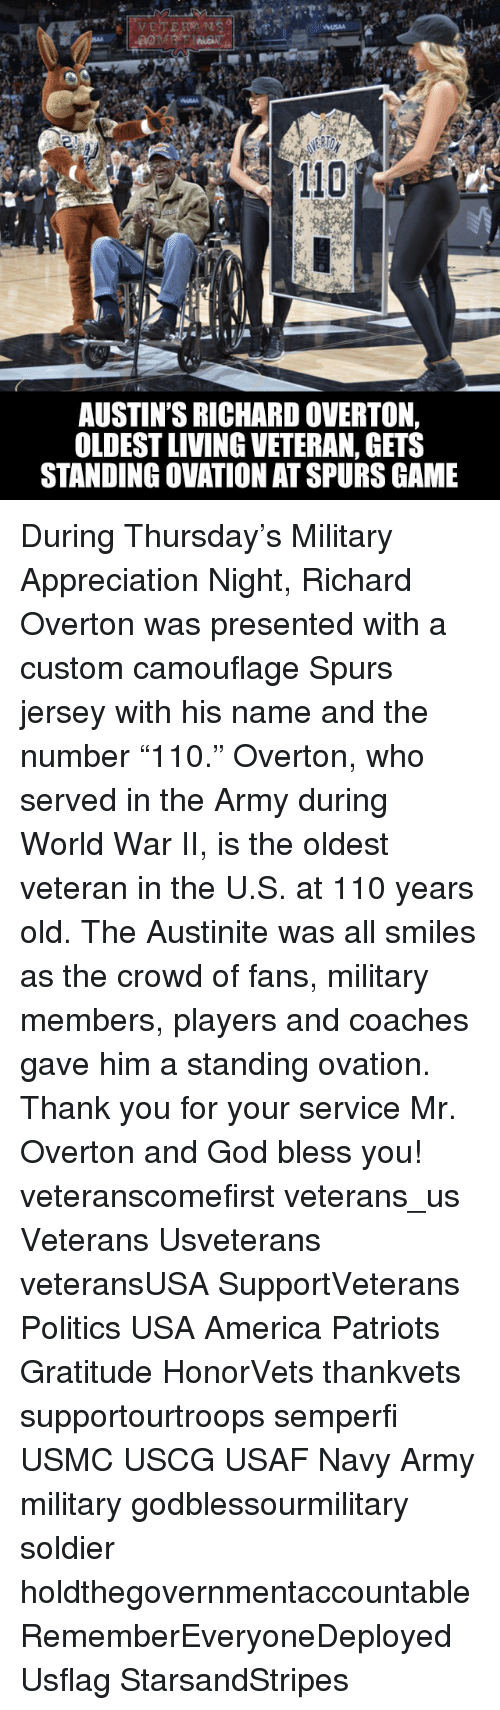 "America, Andrew Bogut, and God: USAA  110  AUSTIN'S RICHARD OVERTON,  OLDESTLIVING VETERAN, GETS  STANDING OVATION ATSPURS GAME During Thursday's Military Appreciation Night, Richard Overton was presented with a custom camouflage Spurs jersey with his name and the number ""110."" Overton, who served in the Army during World War II, is the oldest veteran in the U.S. at 110 years old. The Austinite was all smiles as the crowd of fans, military members, players and coaches gave him a standing ovation. Thank you for your service Mr. Overton and God bless you! veteranscomefirst veterans_us Veterans Usveterans veteransUSA SupportVeterans Politics USA America Patriots Gratitude HonorVets thankvets supportourtroops semperfi USMC USCG USAF Navy Army military godblessourmilitary soldier holdthegovernmentaccountable RememberEveryoneDeployed Usflag StarsandStripes"